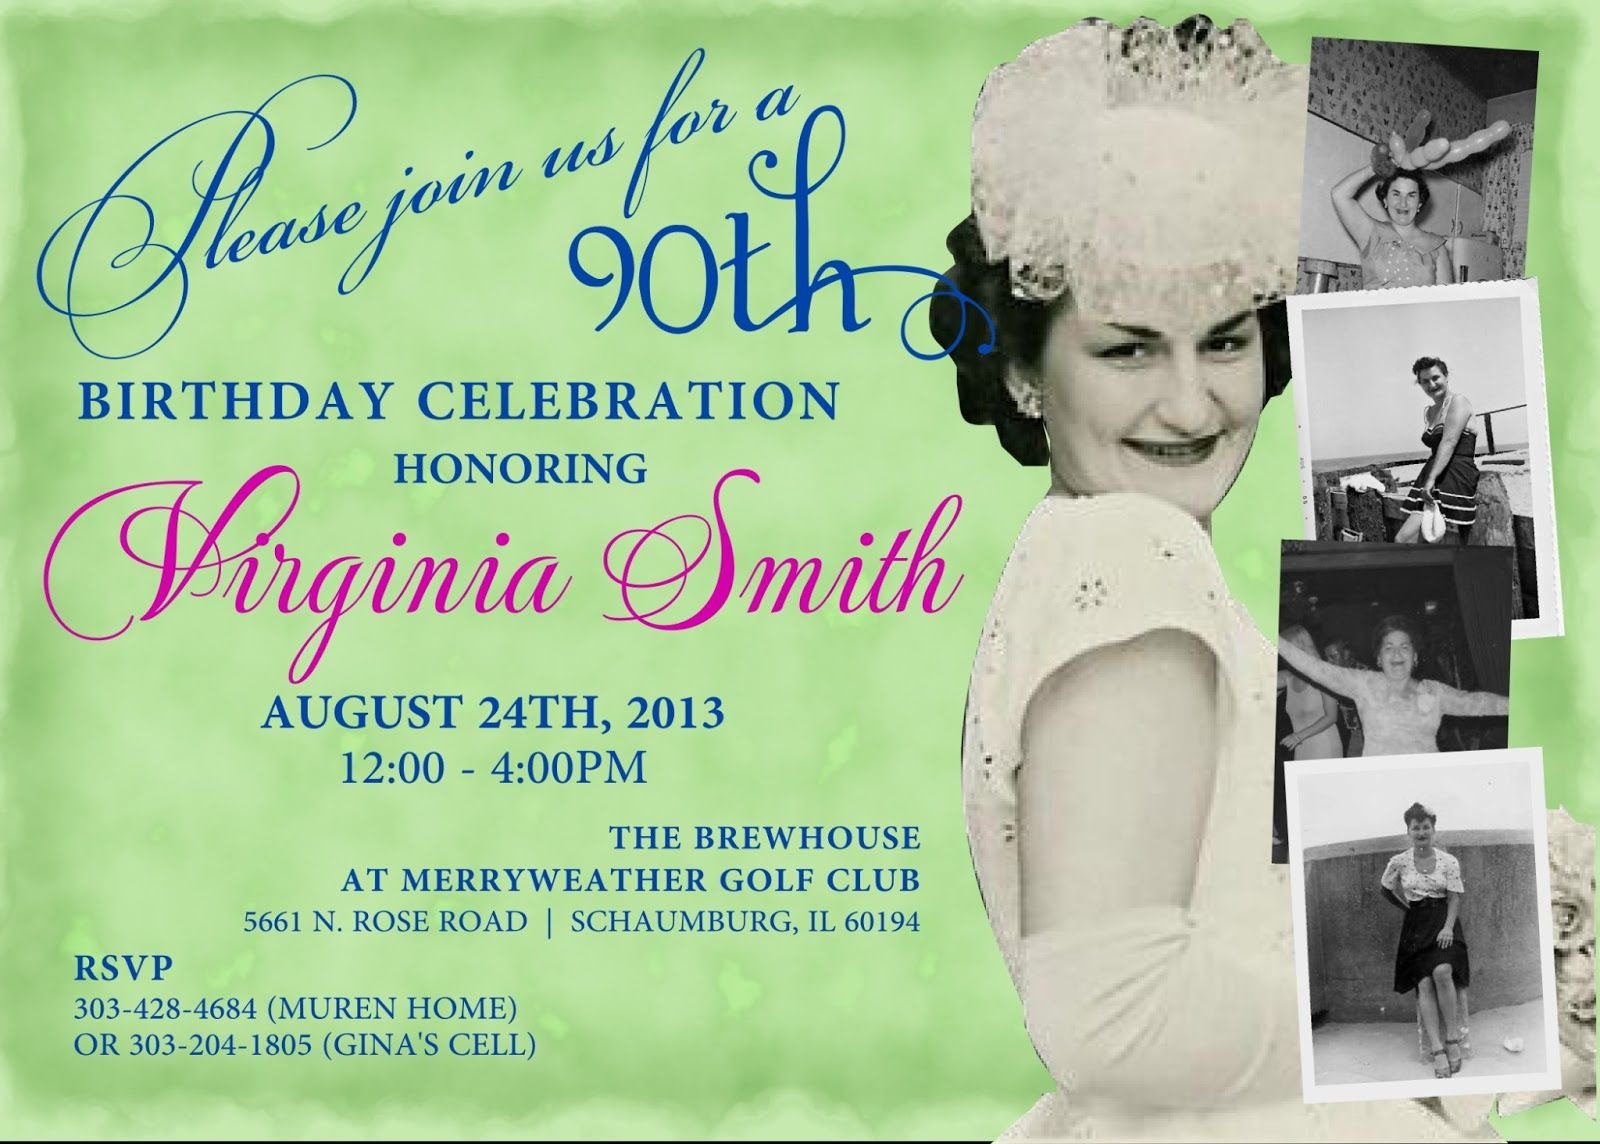 90th Birthday Invitations on Party Invitation Categories | 90th ...